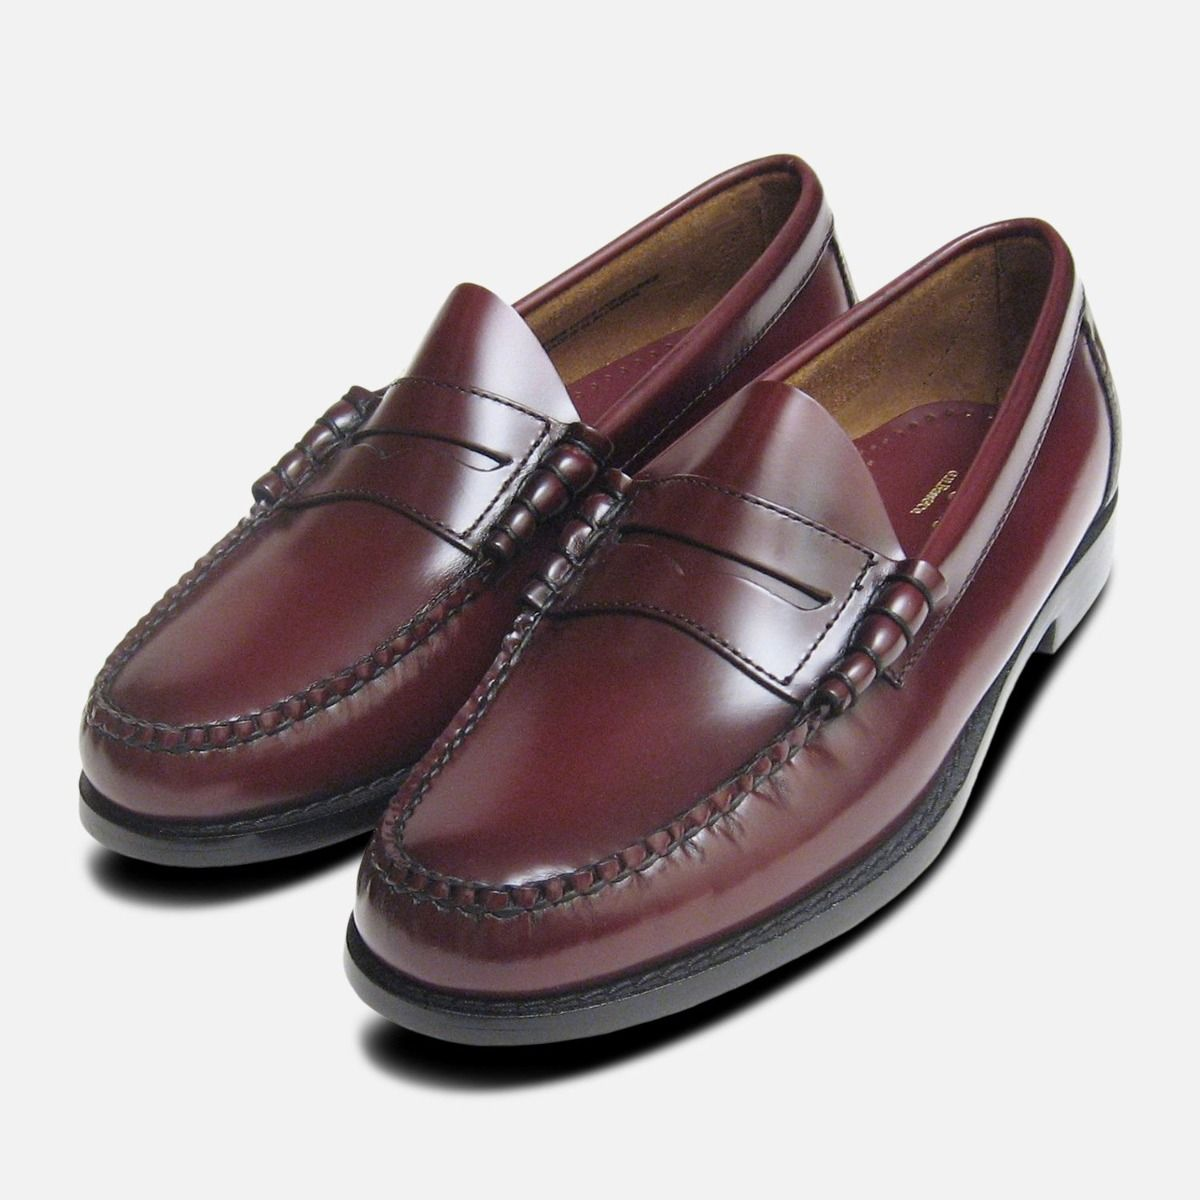 ed3d8d52f27 Classic Mens Burgundy Wine Larson Penny Loafers GH Bass Weejuns